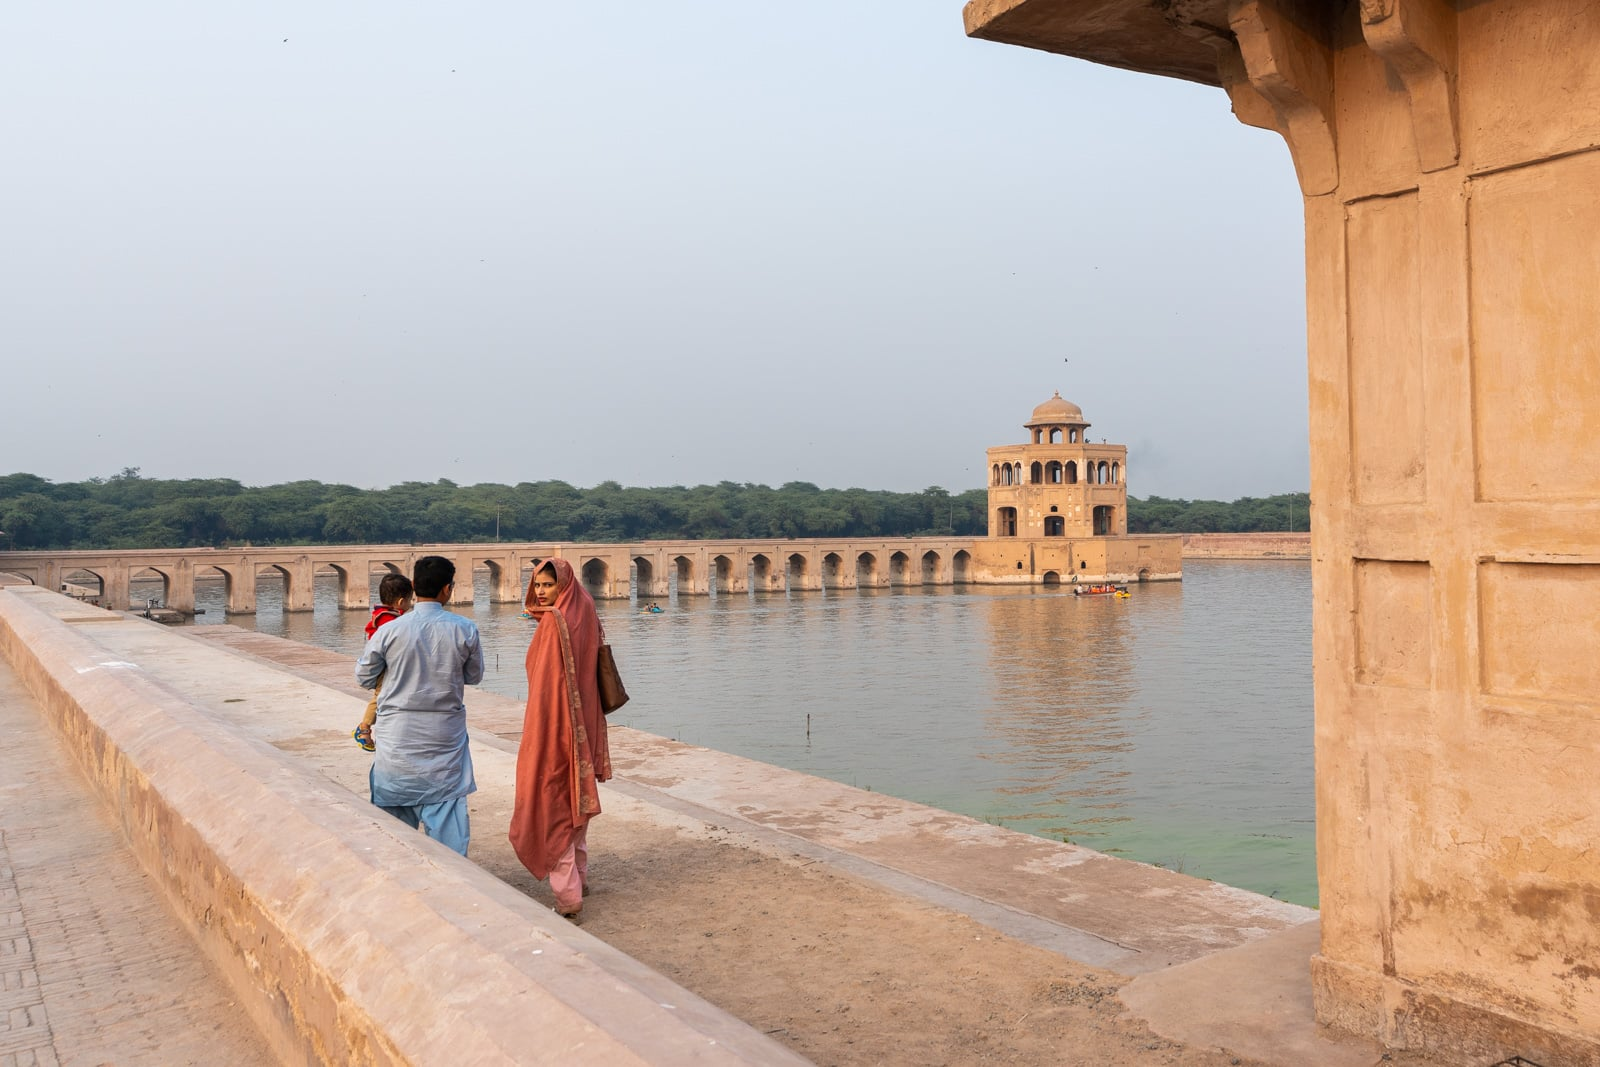 Interesting day trips from Lahore - A family walking at Hiran Minar monument in Sheikhpura, Pakistan